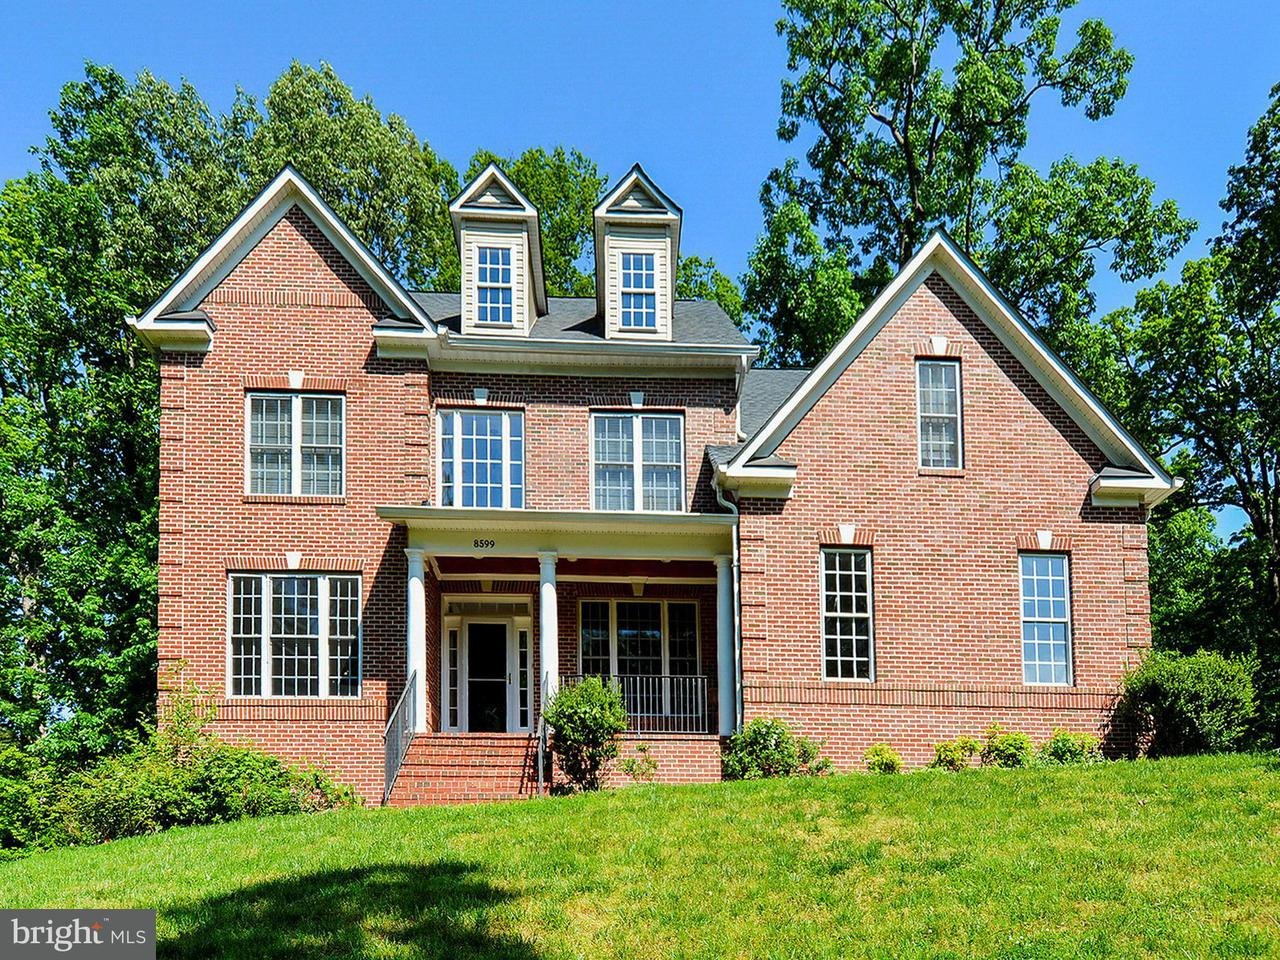 Single Family Home for Sale at 8599 Mount Zephyr Drive 8599 Mount Zephyr Drive Alexandria, Virginia 22309 United States